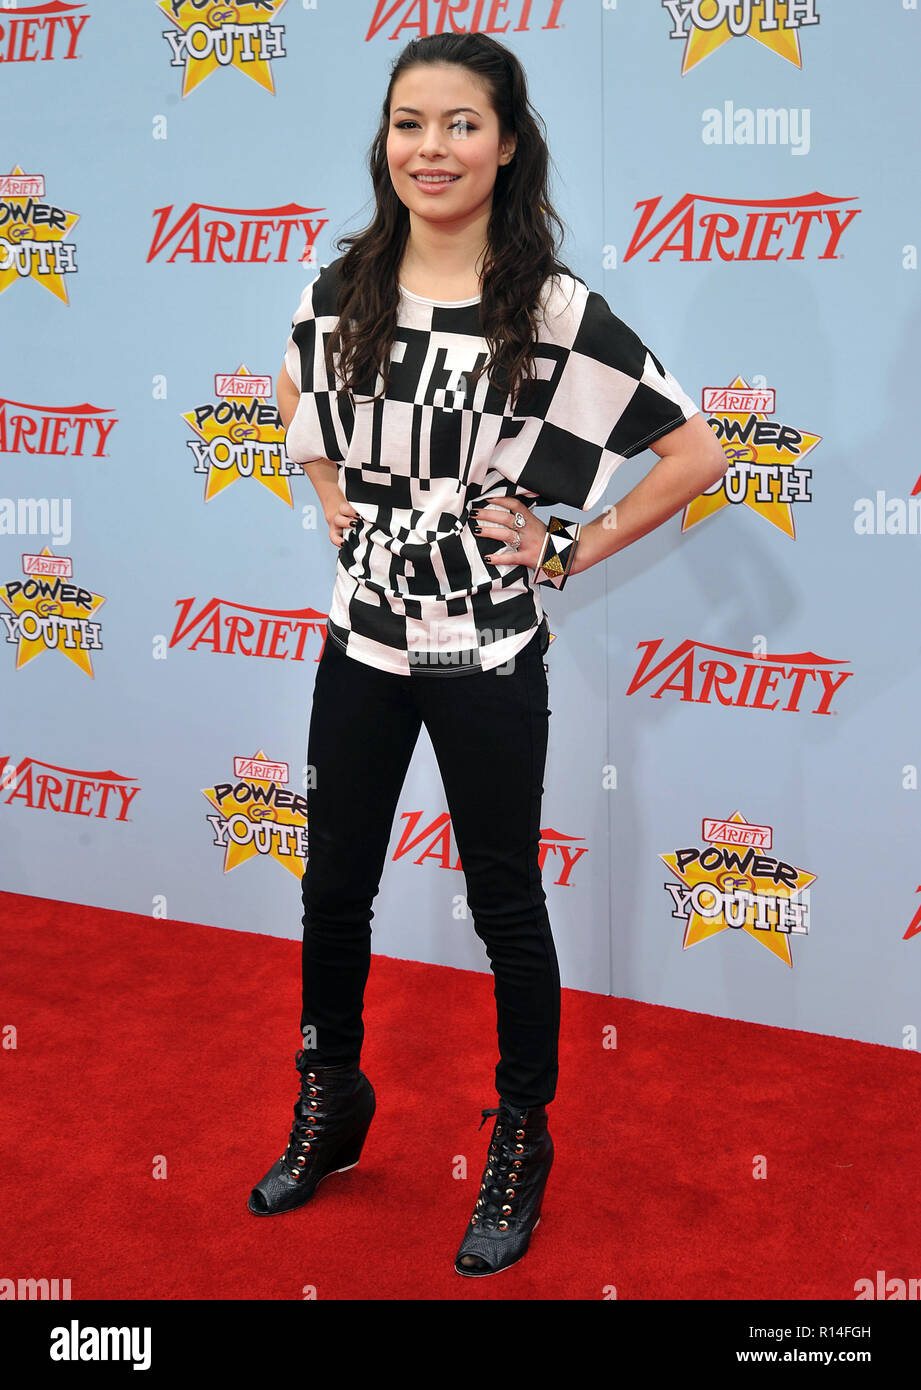 Miranda Cosgrove_47 - Power Of Youth Event on the Paramount Lot In Los Angeles.Miranda Cosgrove_47 Red Carpet Event, Vertical, USA, Film Industry, Celebrities,  Photography, Bestof, Arts Culture and Entertainment, Topix Celebrities fashion /  Vertical, Best of, Event in Hollywood Life - California,  Red Carpet and backstage, USA, Film Industry, Celebrities,  movie celebrities, TV celebrities, Music celebrities, Photography, Bestof, Arts Culture and Entertainment,  Topix, vertical, one person,, from the year , 2009, inquiry tsuni@Gamma-USA.com Fashion - Full Length - Stock Image